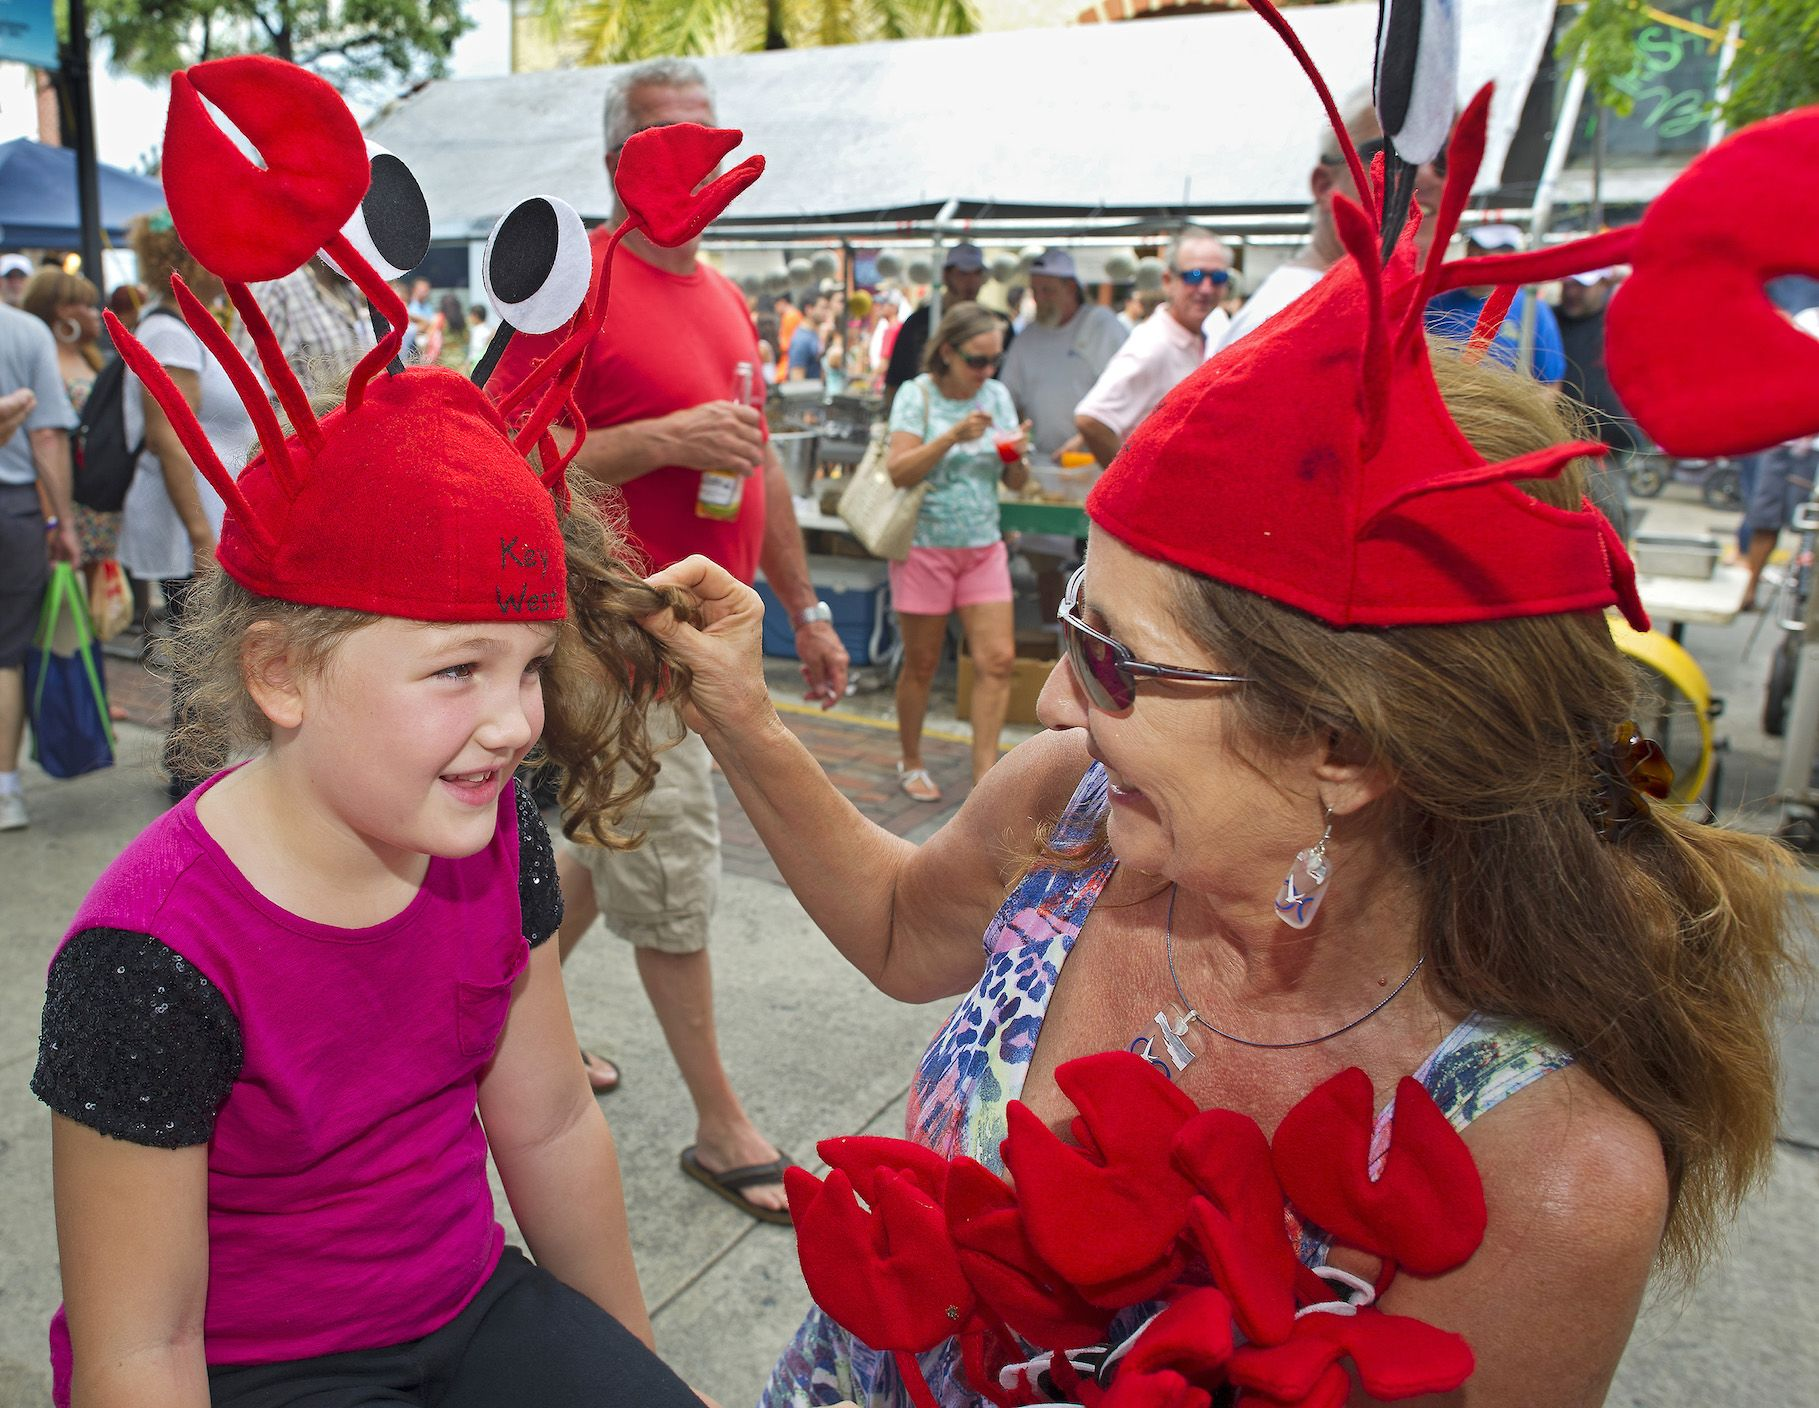 See What's Cracking at the Key West Lobsterfest